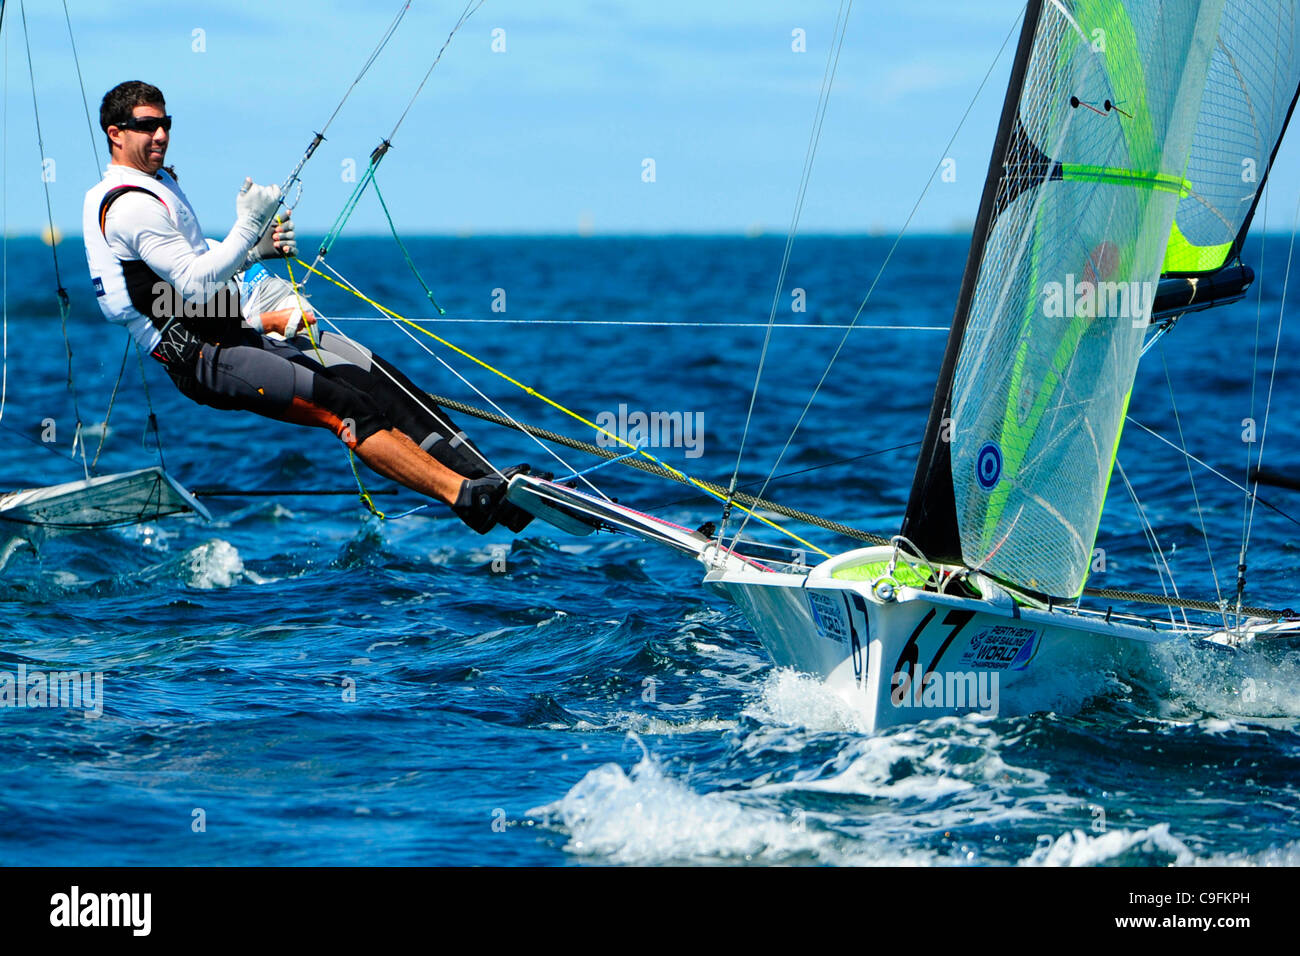 16.12.2011. Perth, Australia. Yann Rocherieux (FRA) and Mathieu Frei (FRA) competes in the 49er men's skiff - Stock Image